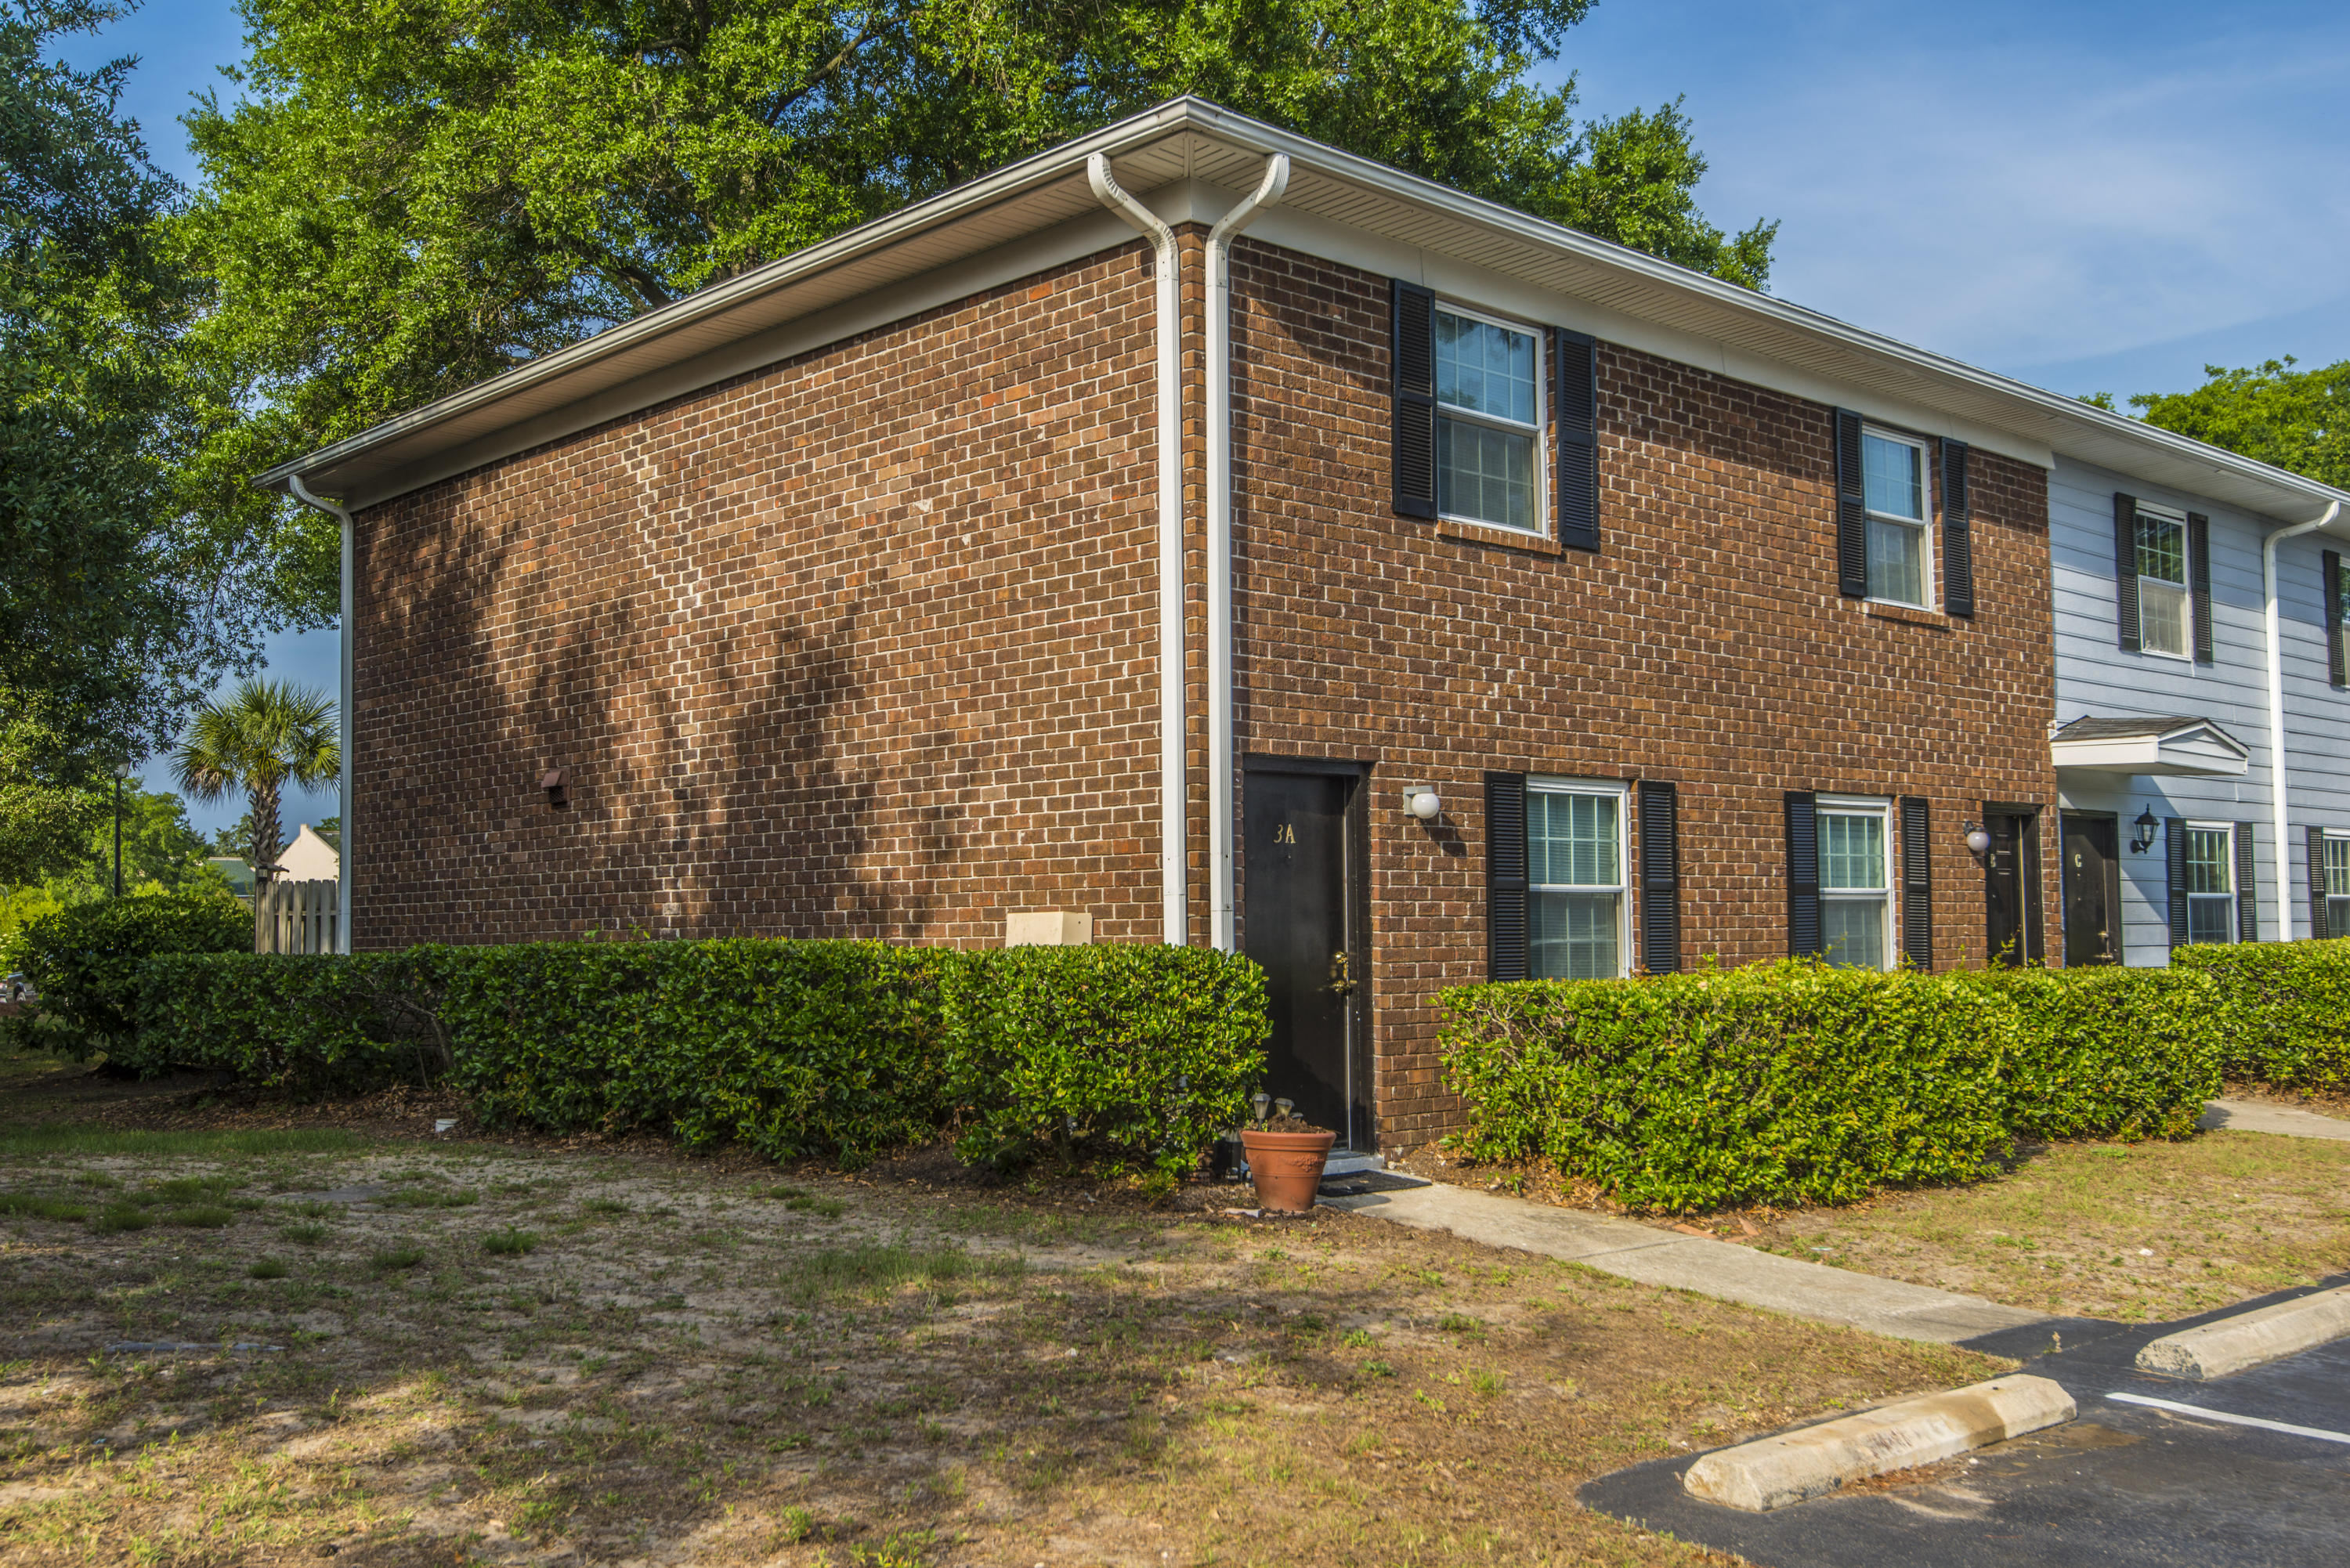 Rivers Point Row Homes For Sale - 21 Rivers Point Row, Charleston, SC - 29